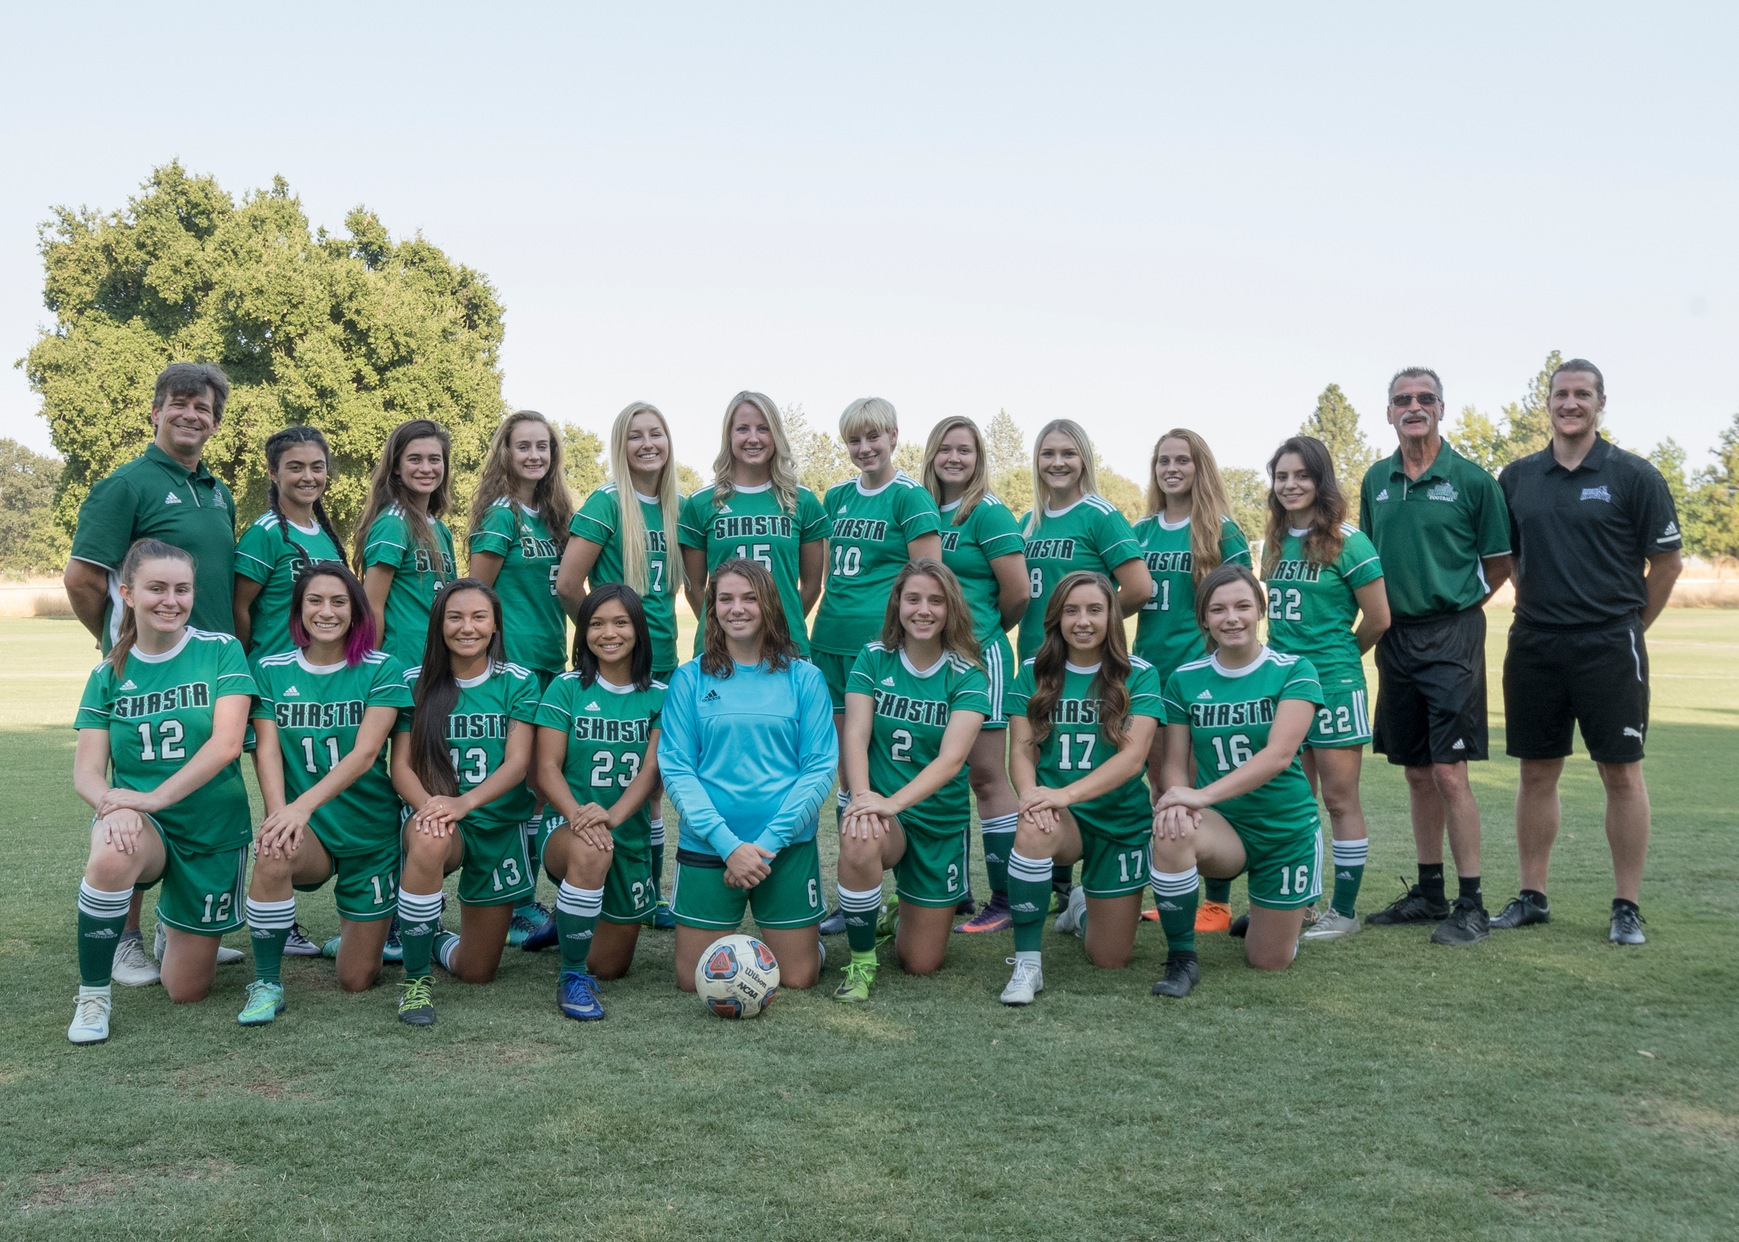 SHASTA COLLEGE STARTS THE YEAR WITH 5-1 WIN OVER SACRAMENTO